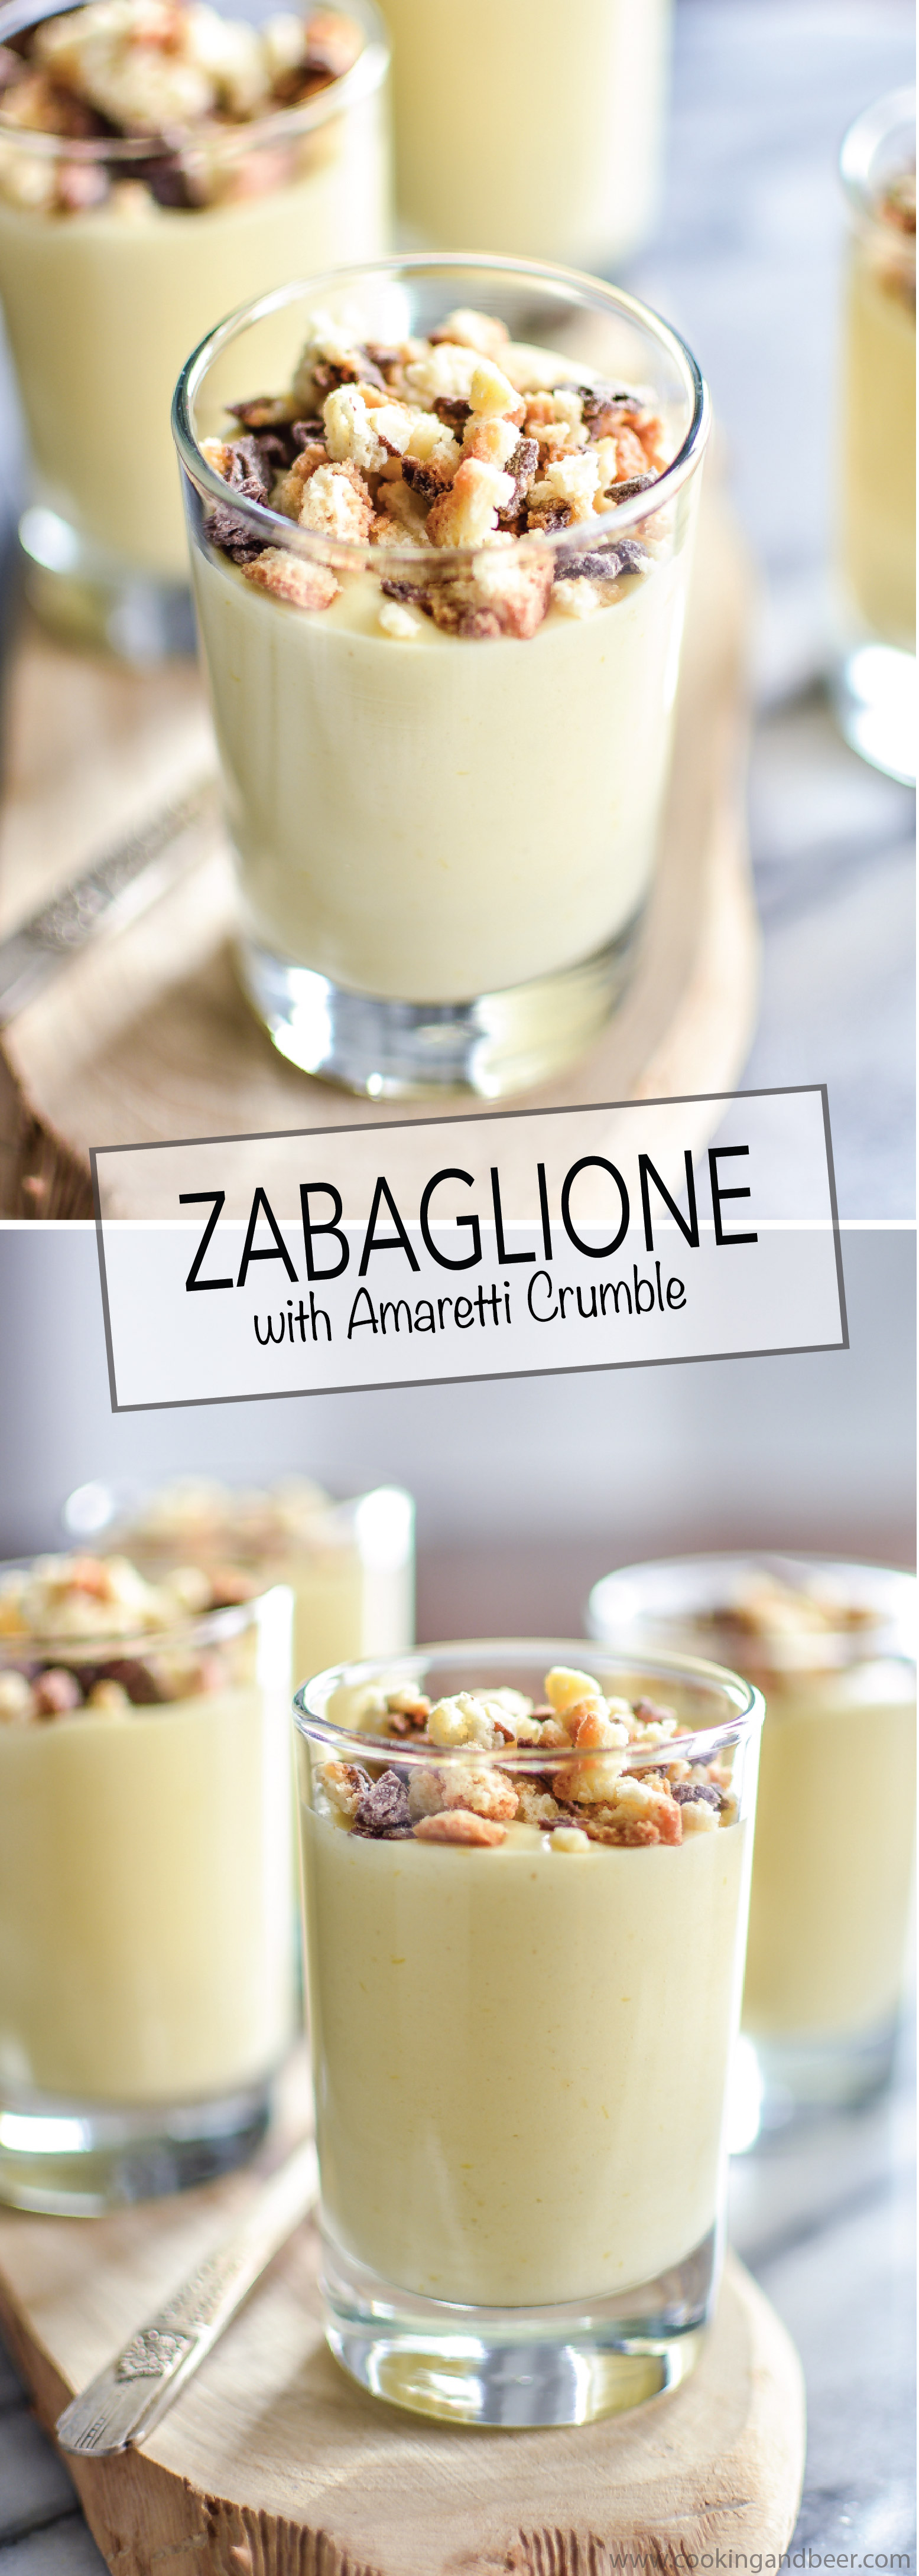 Italian Zabaglione with Biscotti Crumble is a great dessert recipe for ...